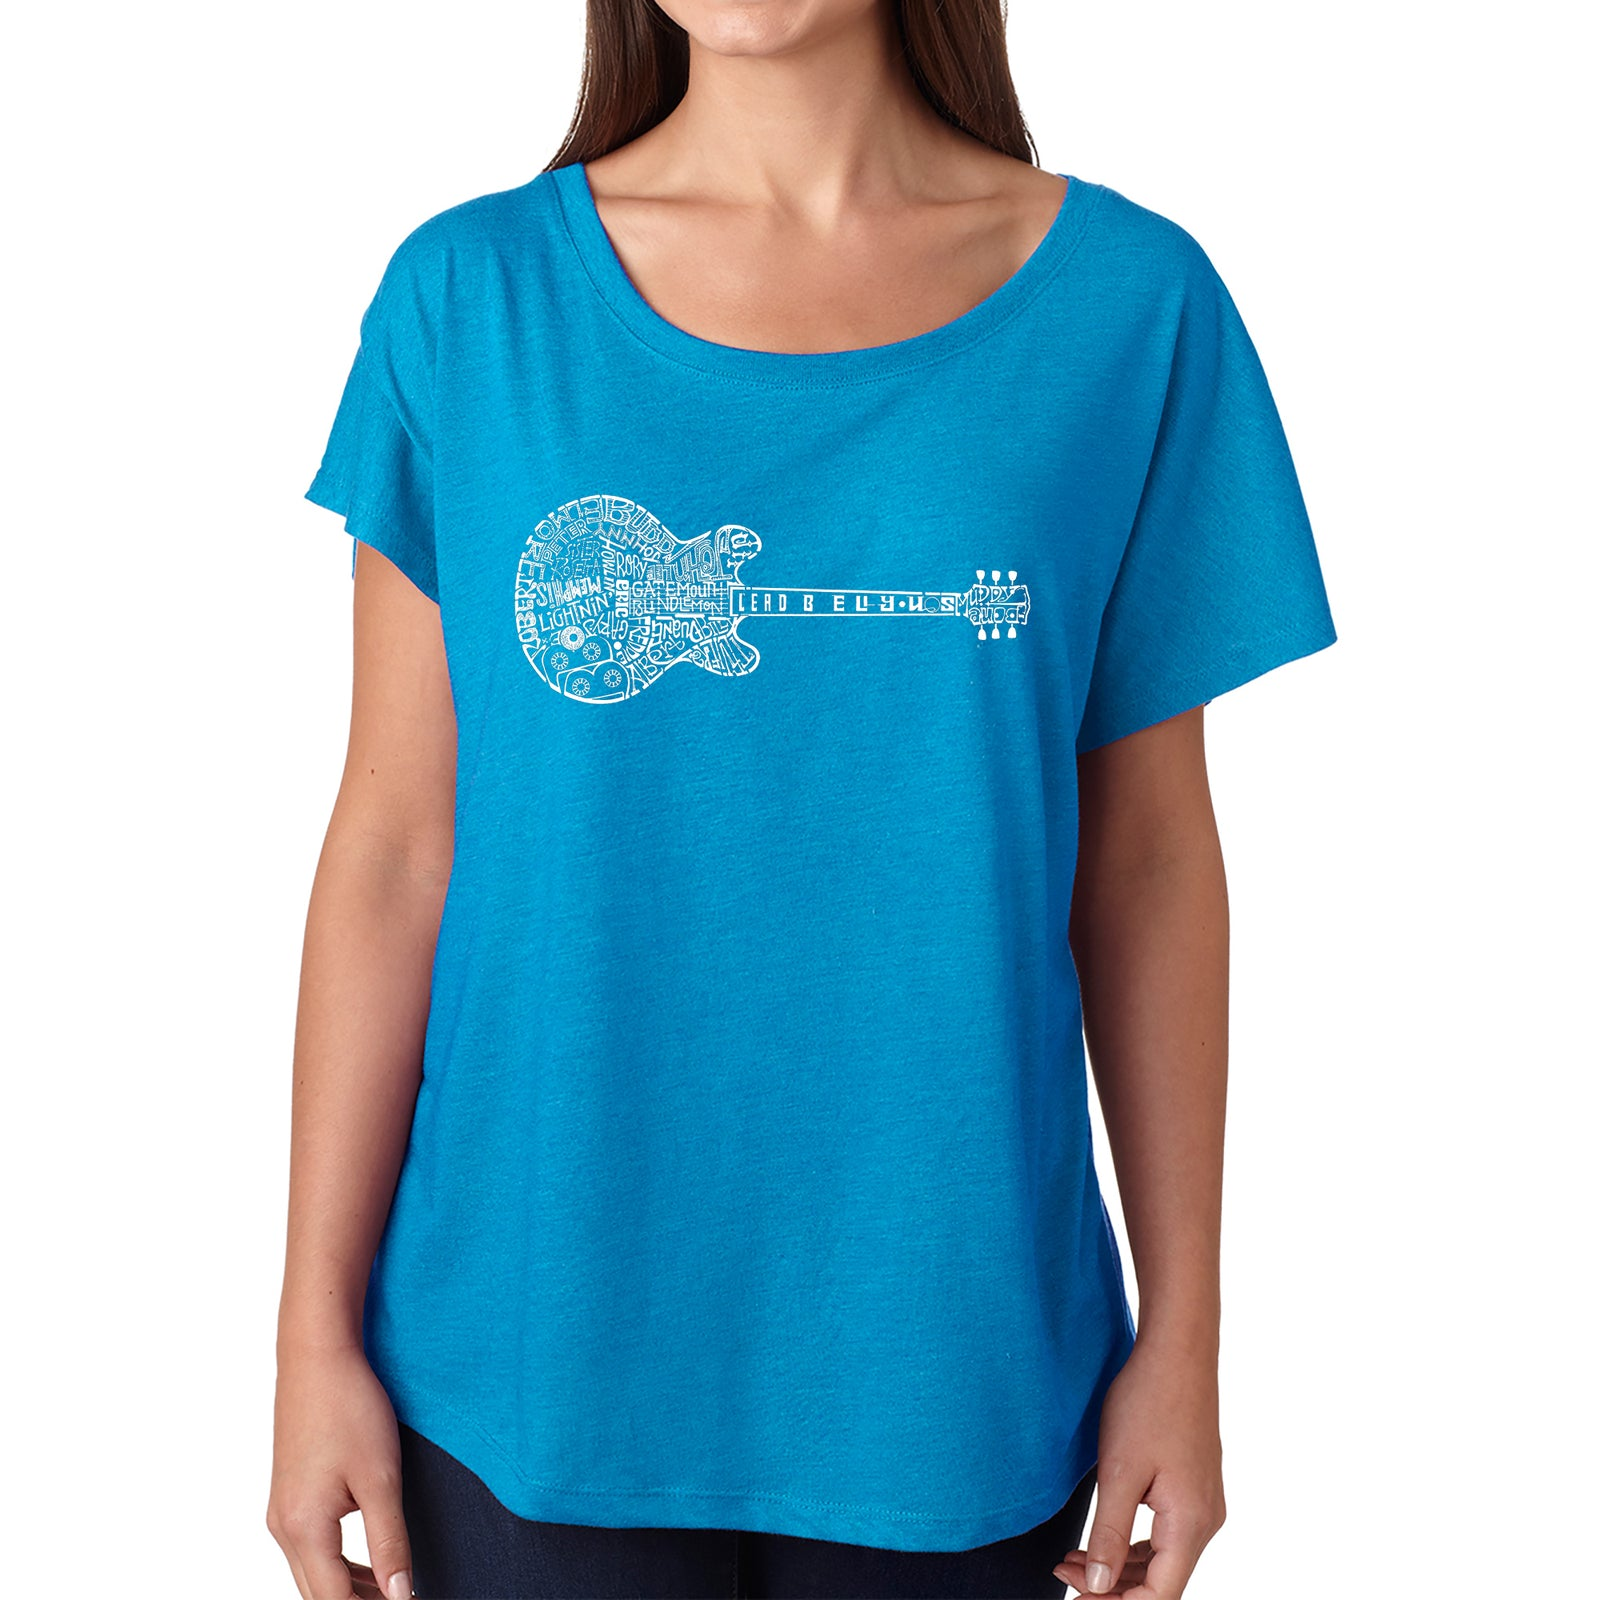 Women's Loose Fit Dolman Cut Word Art Shirt - Blues Legends